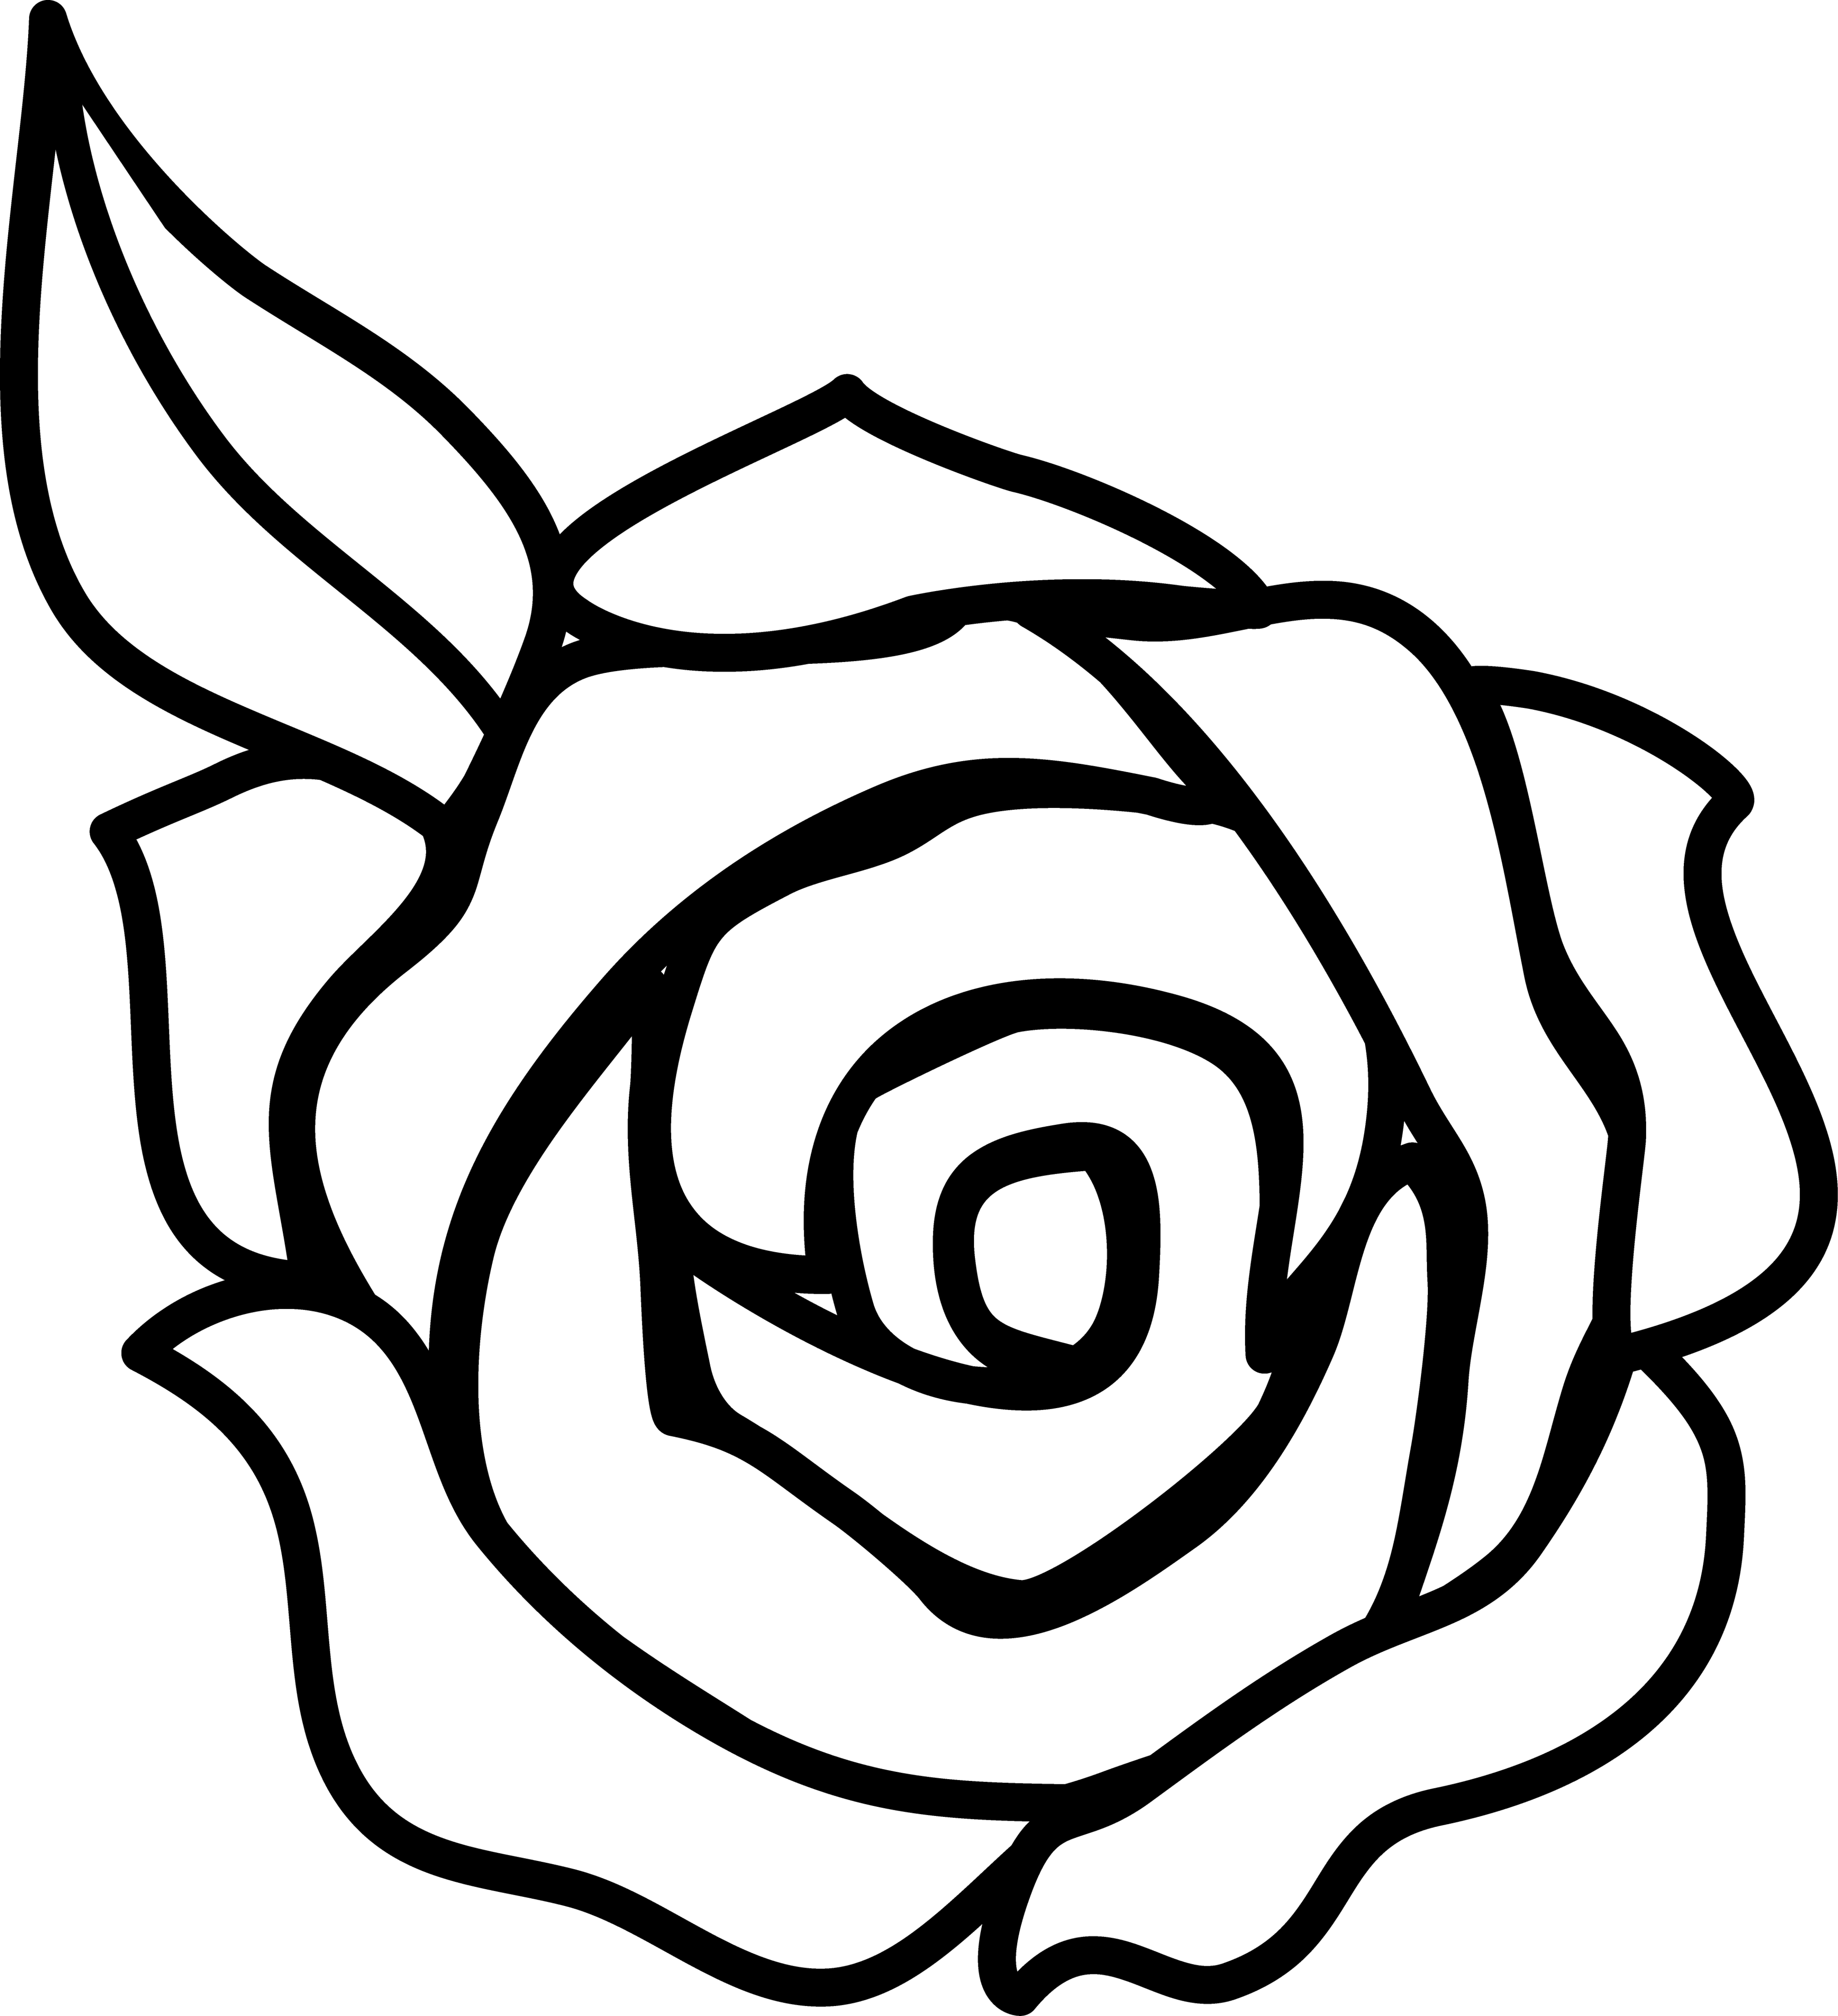 Rose clipart doodle.  roses drawing at